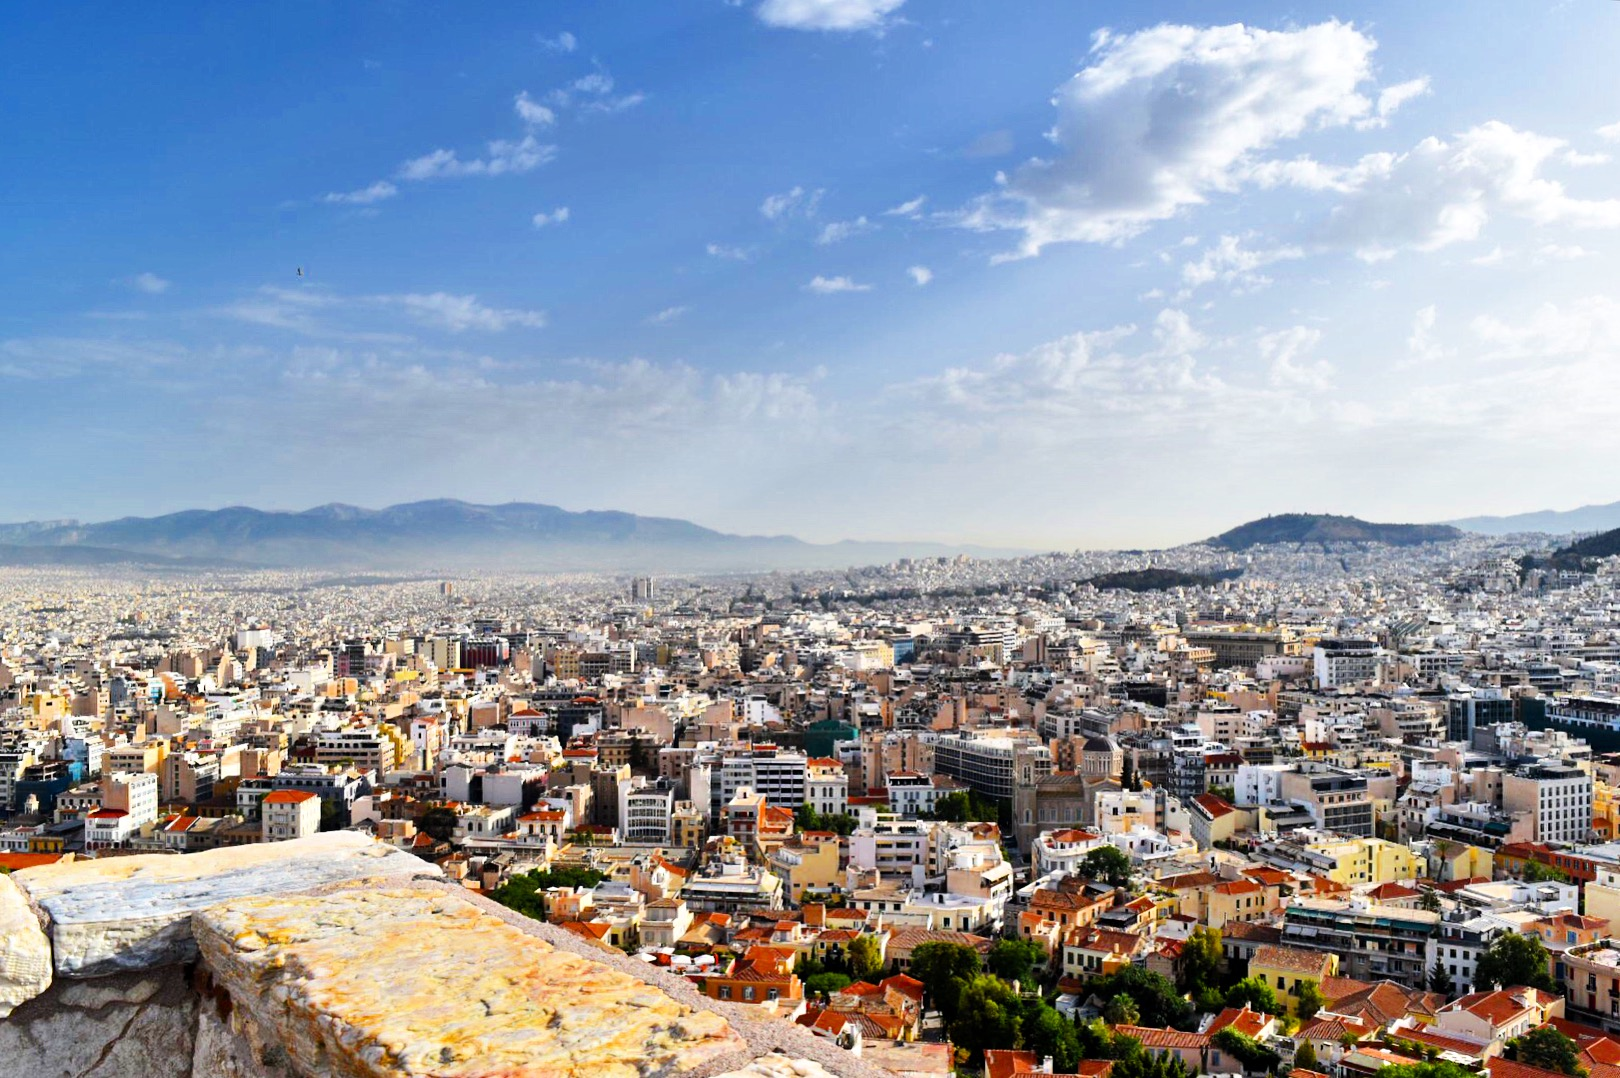 City of Athens